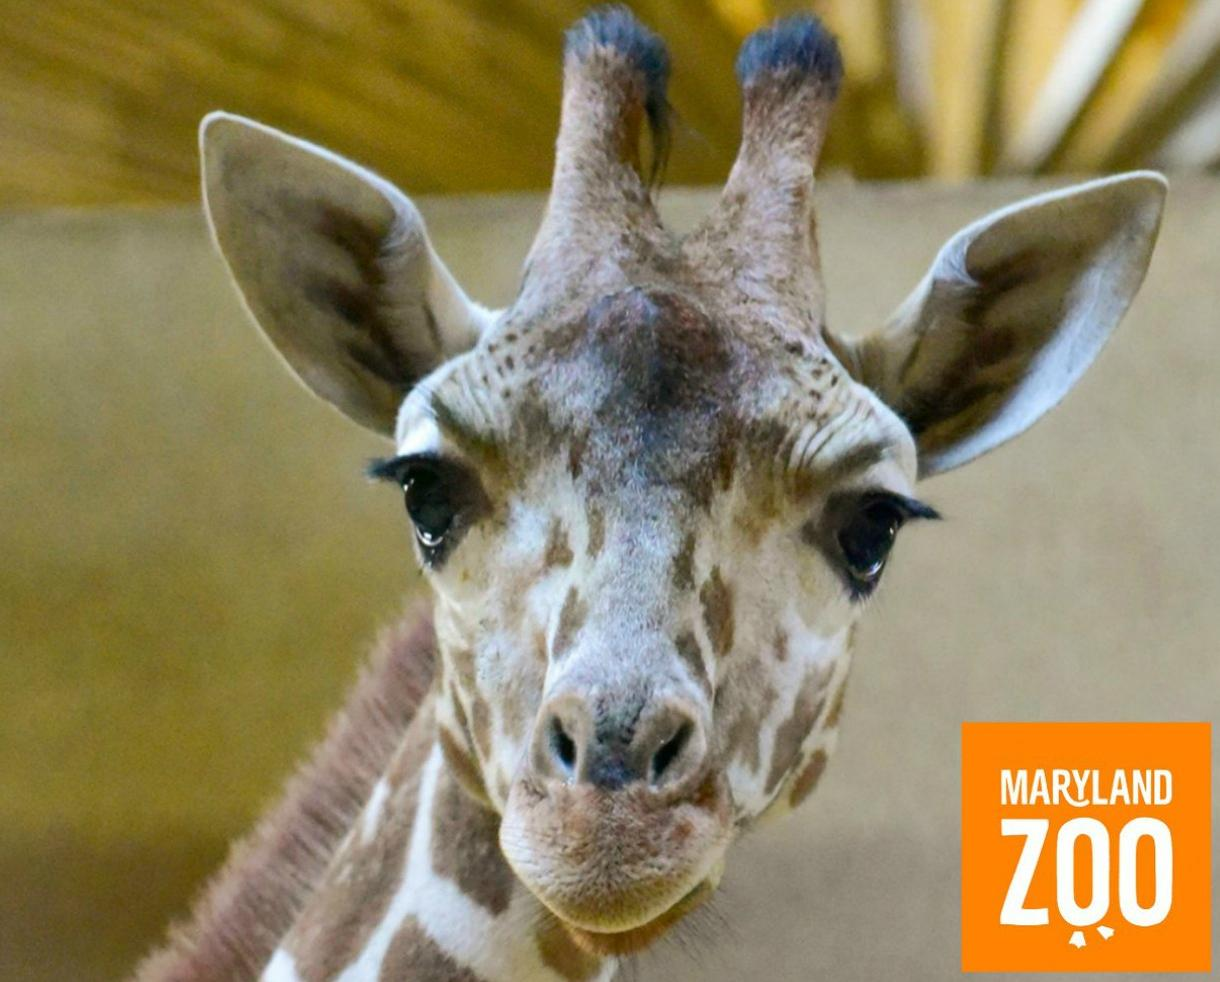 Purchase a Maryland Zoo Membership and Get 2 Additional Months FREE!